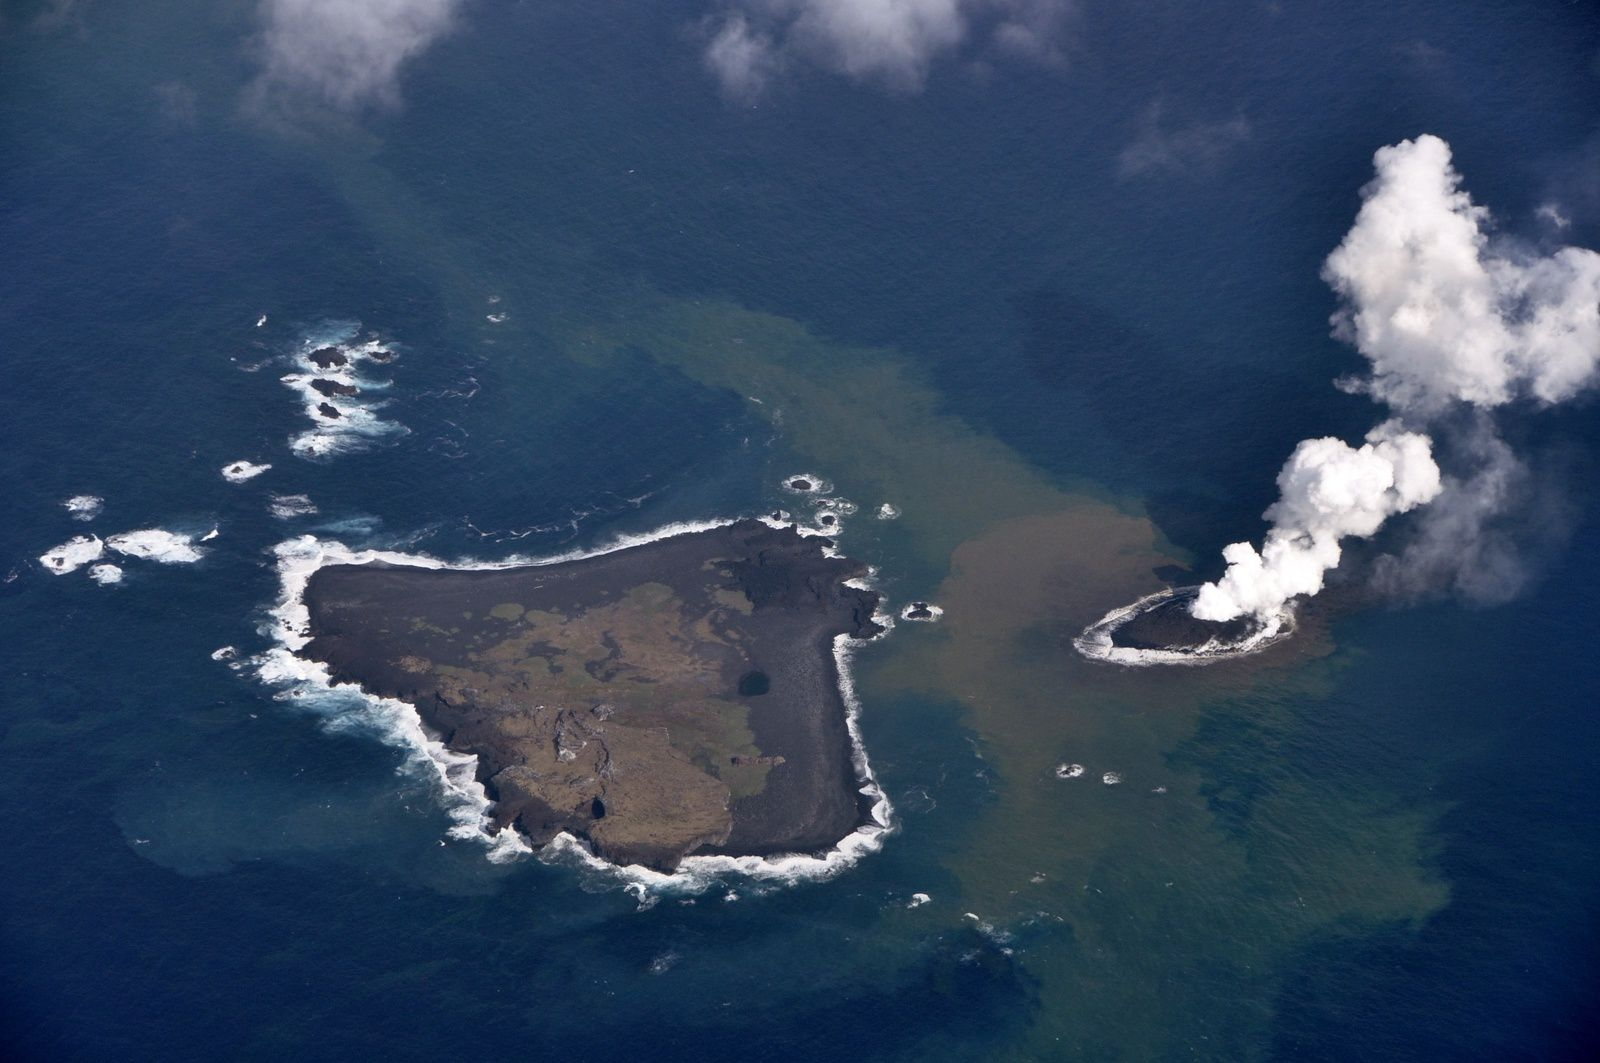 Nishino-shima et le site de l'éruption le 20 novembre 2013 - photo Japan Coast Guards